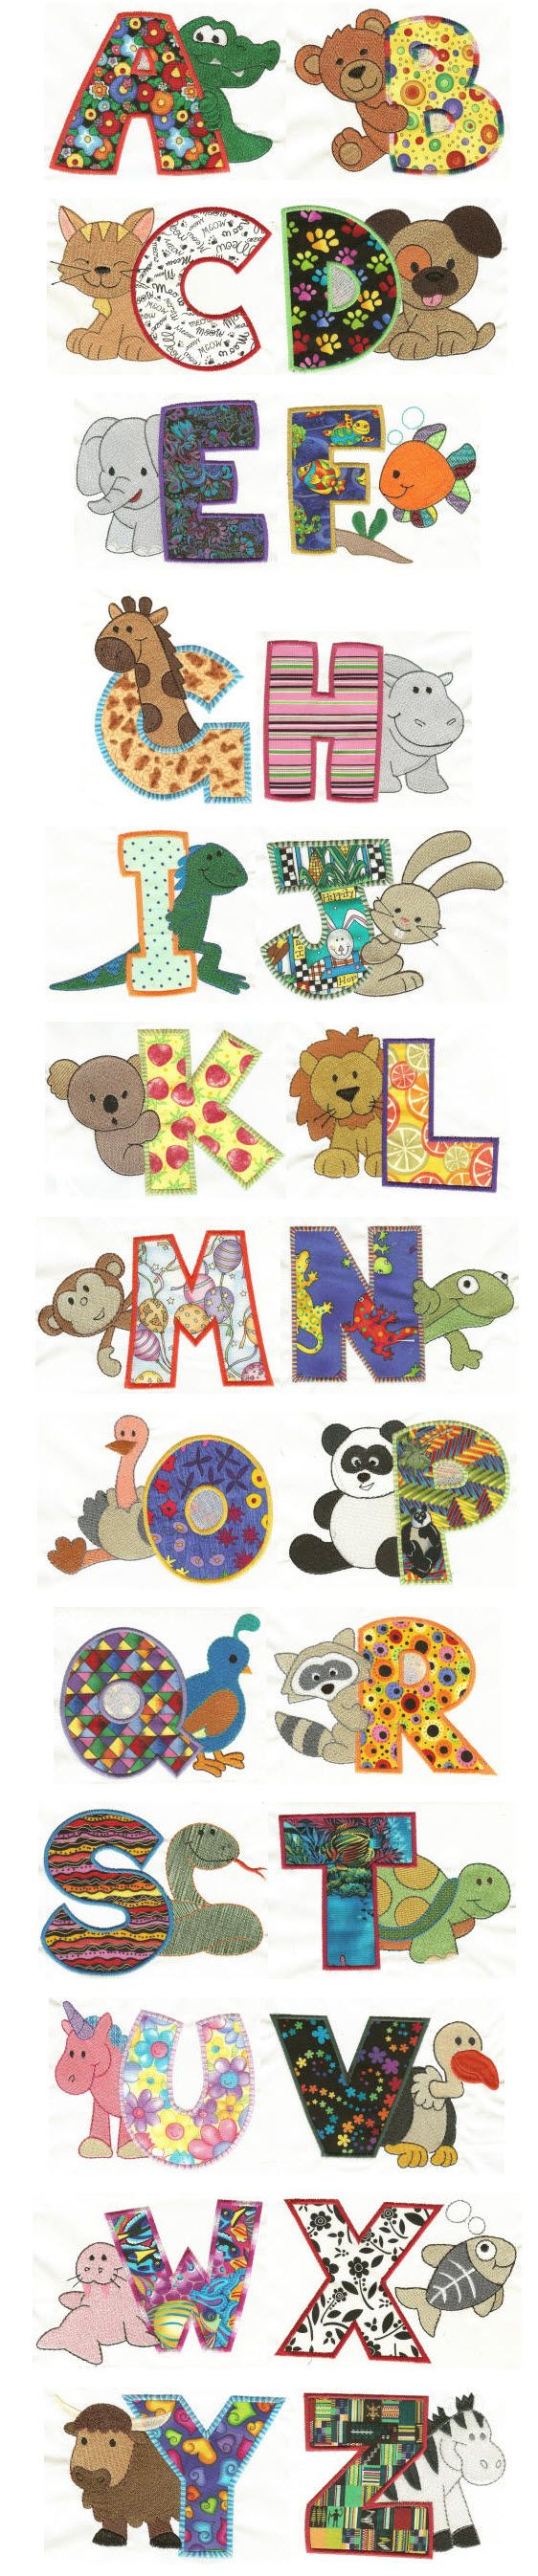 Cute Critters Applique Alphabet